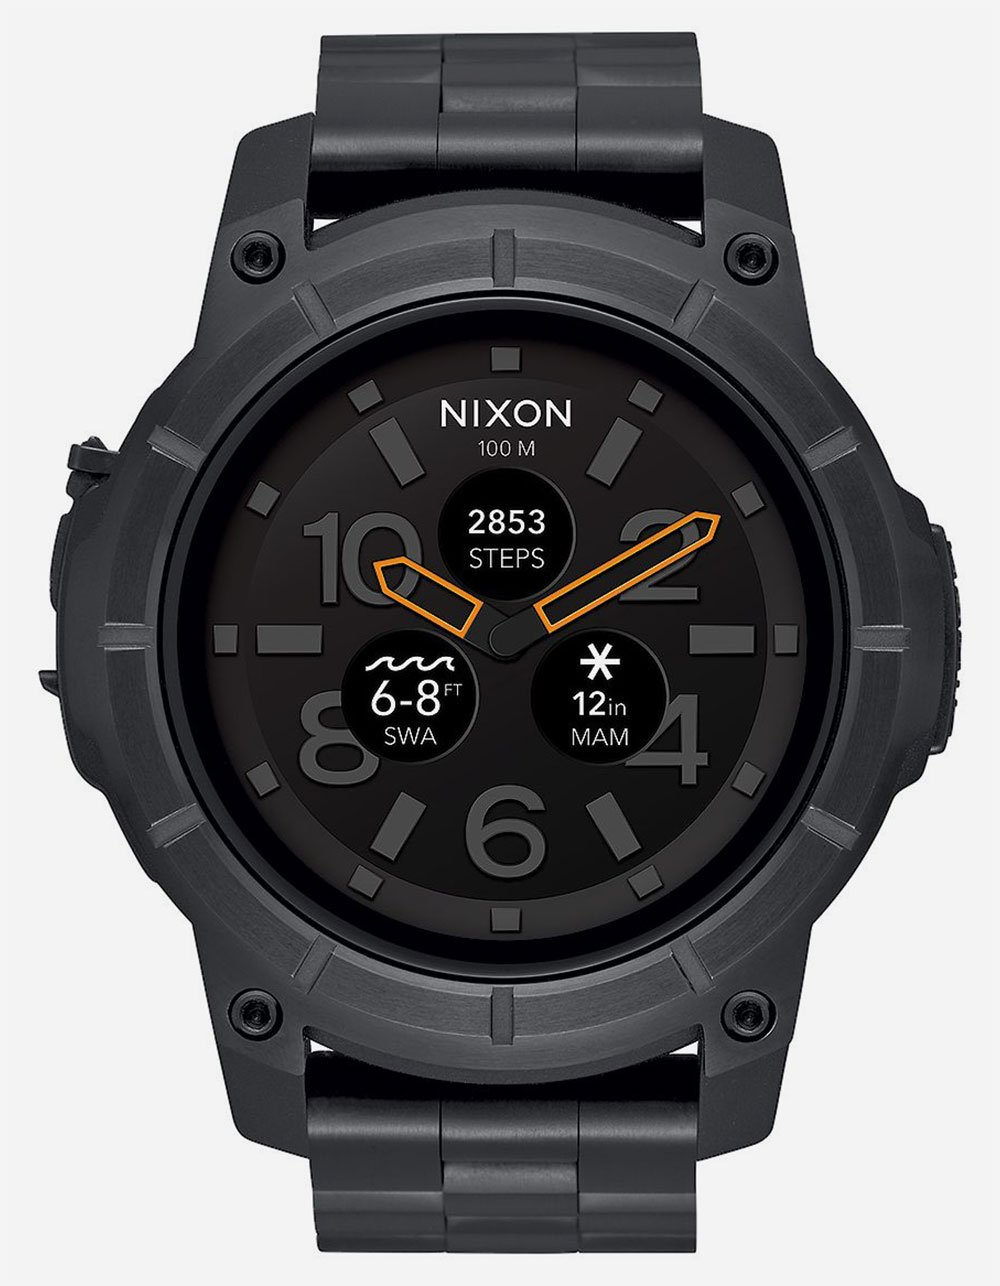 Nixon A1216-000 Mission SS Men's Watch Black 48mm Custom Injection Molded Fiber Reinforced Polycarbonate Case, Solid Stainless Steel Bezel by NIXON